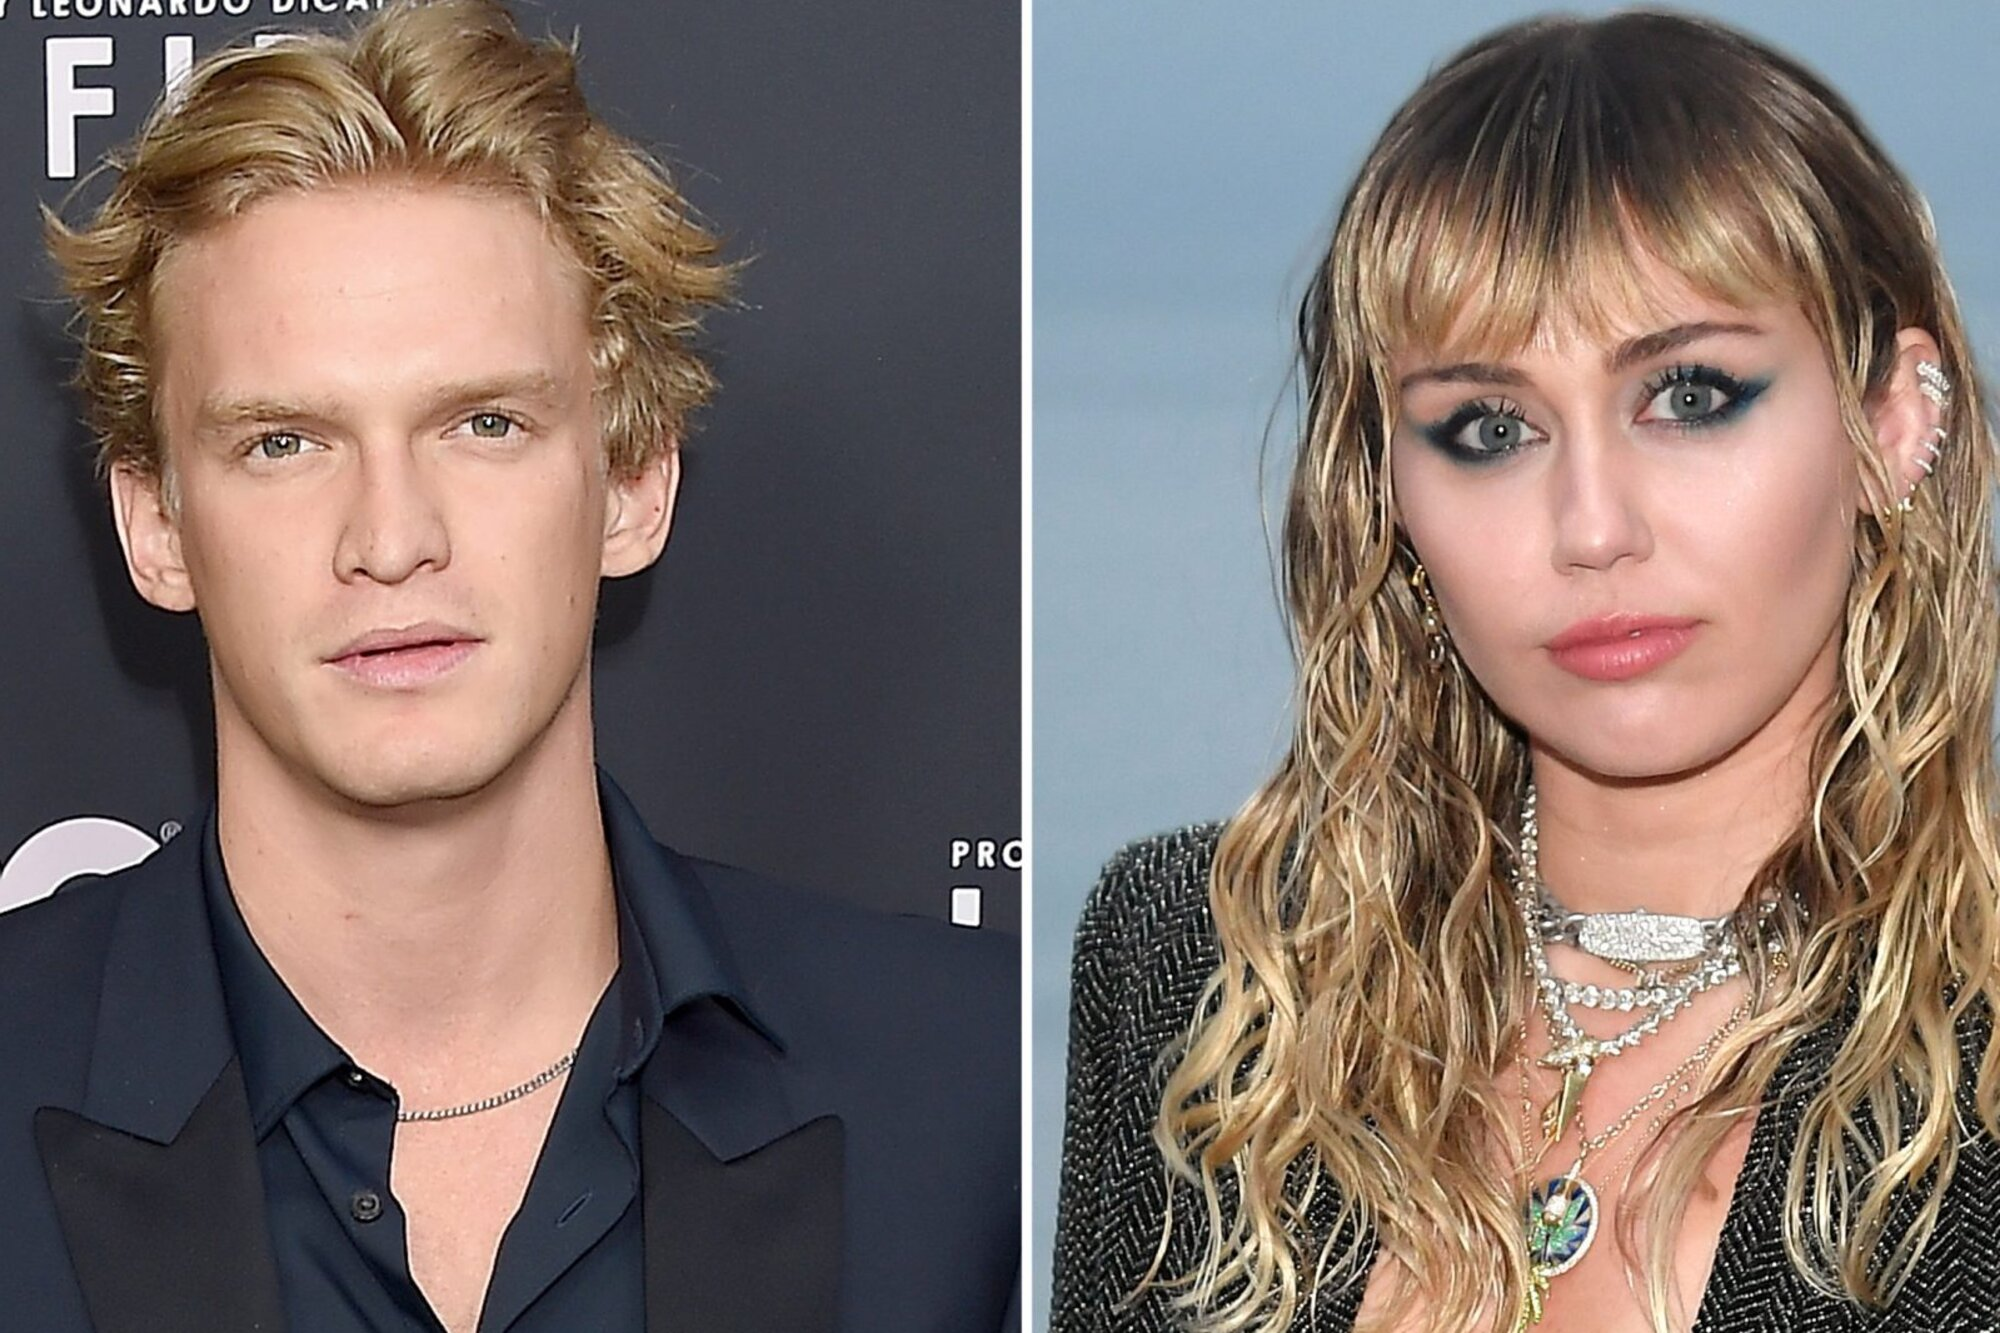 Cody Simpson And Miley Cyrus Are Lsquo Still Friends Says Source People Com